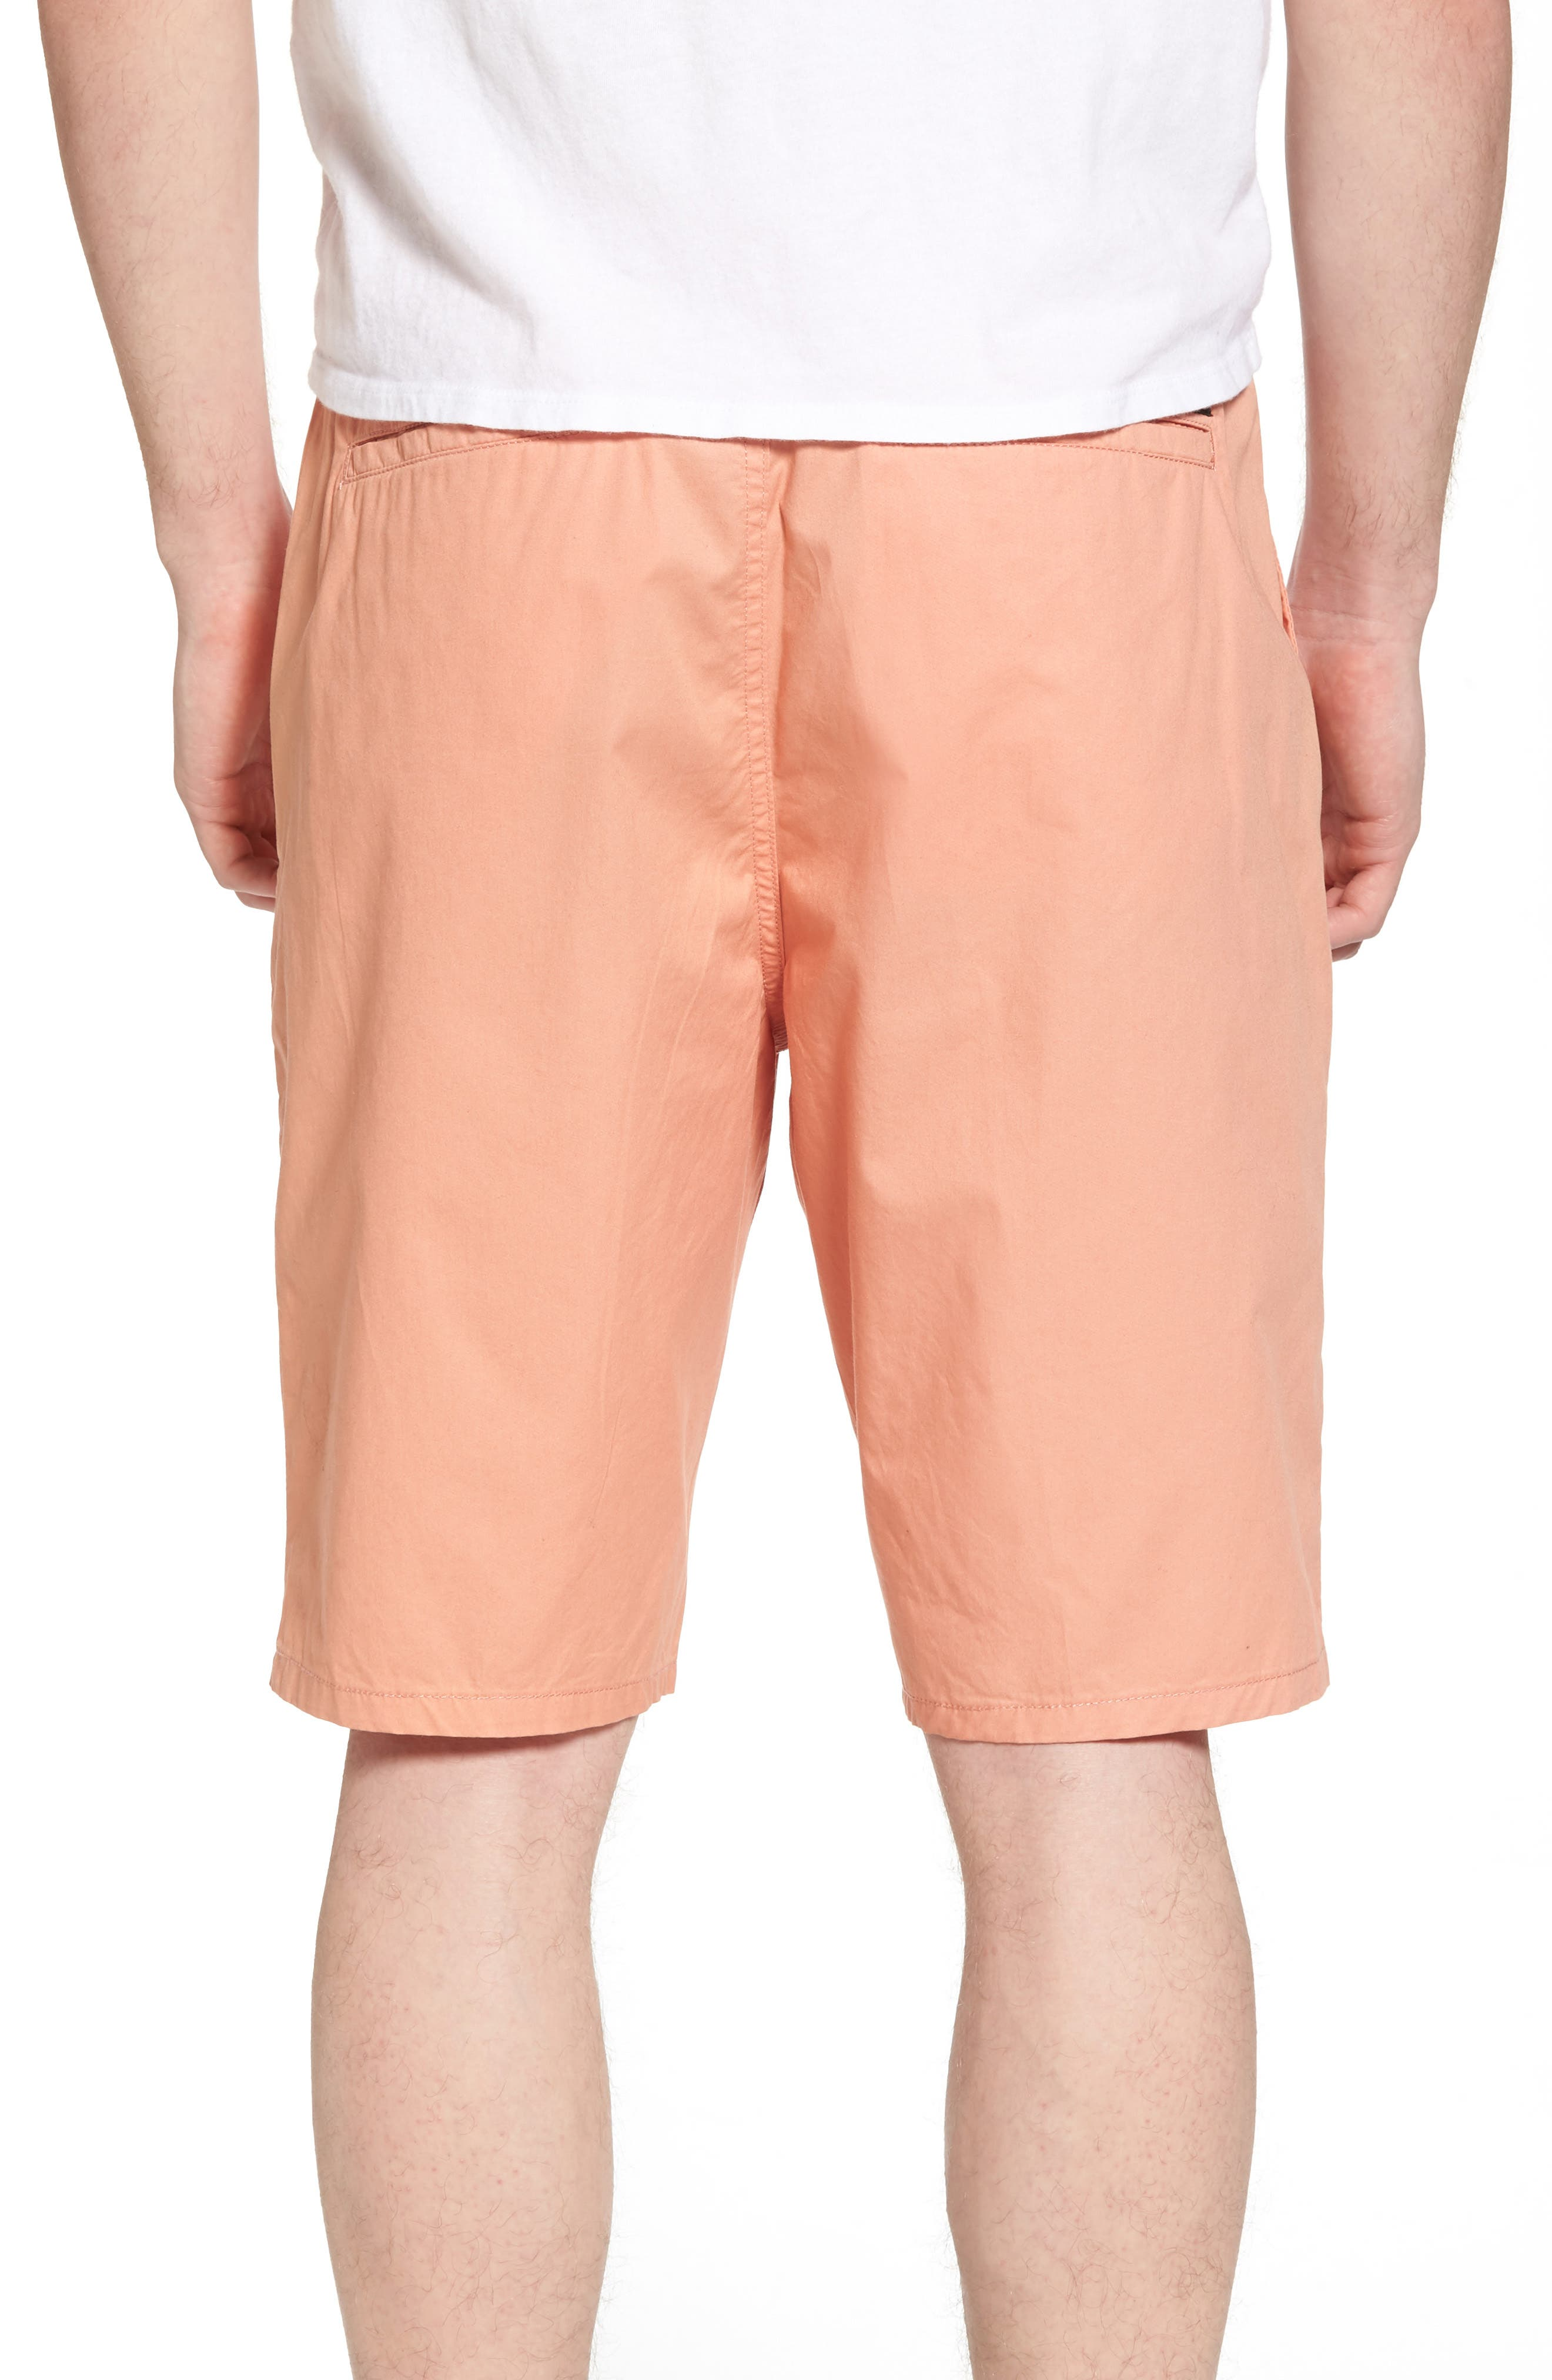 Straggler Light Shorts,                             Alternate thumbnail 2, color,                             Dusty Rose